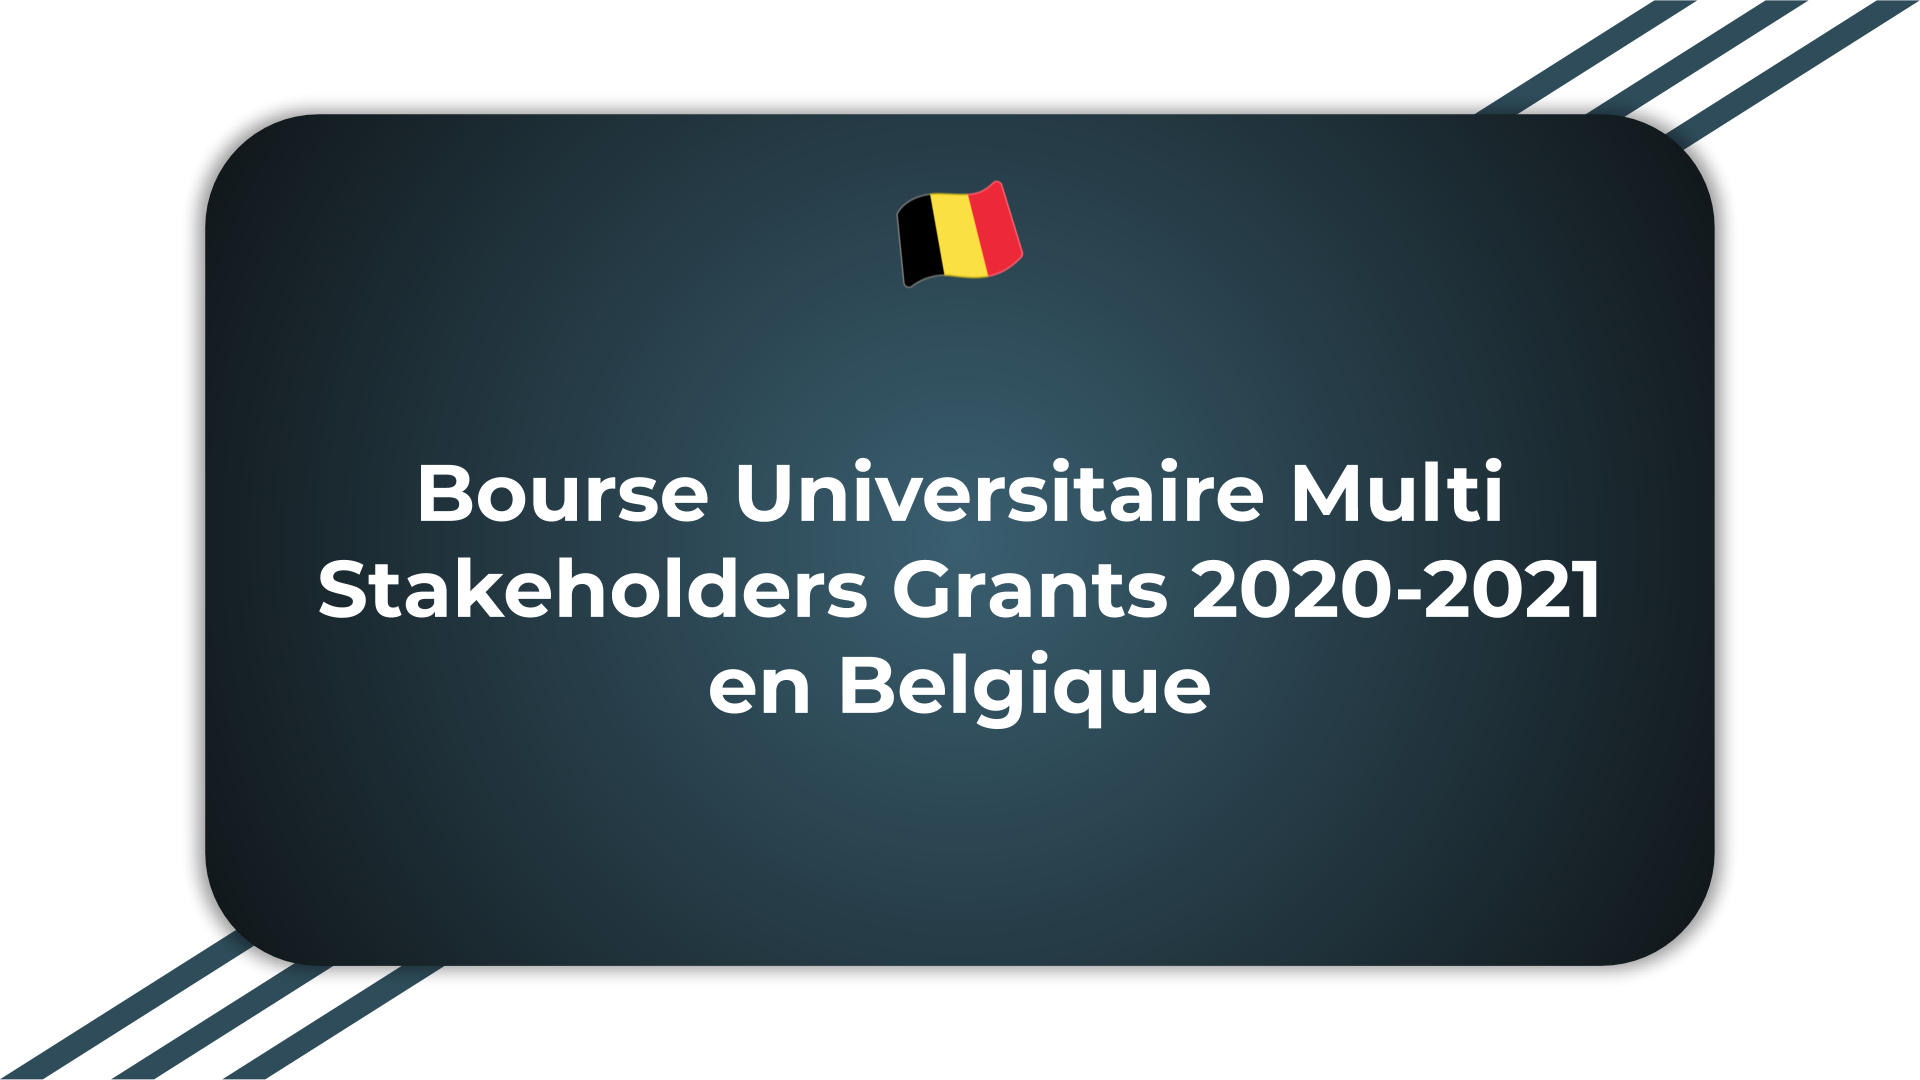 Bourse Universitaire Multi Stakeholders Grants